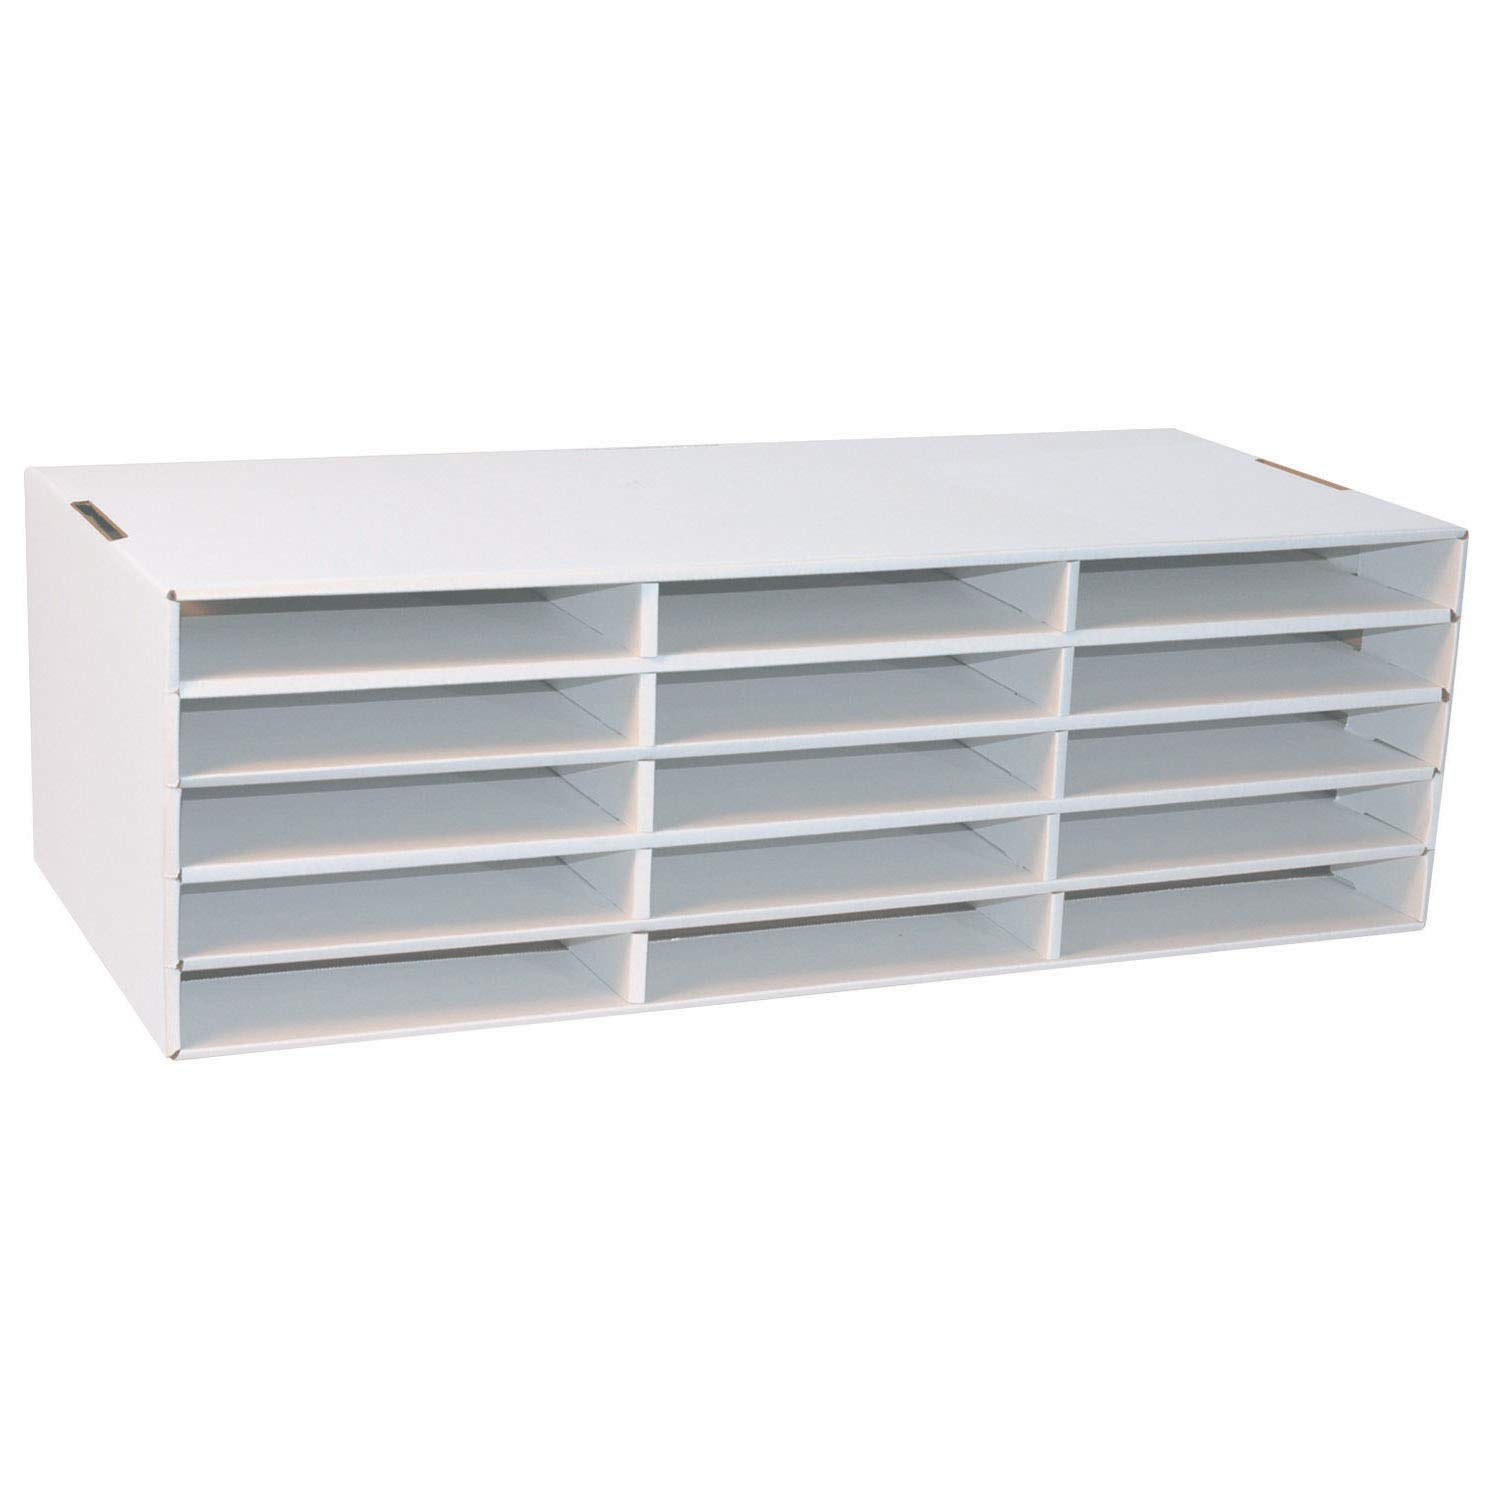 Classroom Keepers 9'' x 12'' Construction Paper Storage, White,  9-3/8''H x 29-1/4''W x 12-7/8''D, 1 Piece